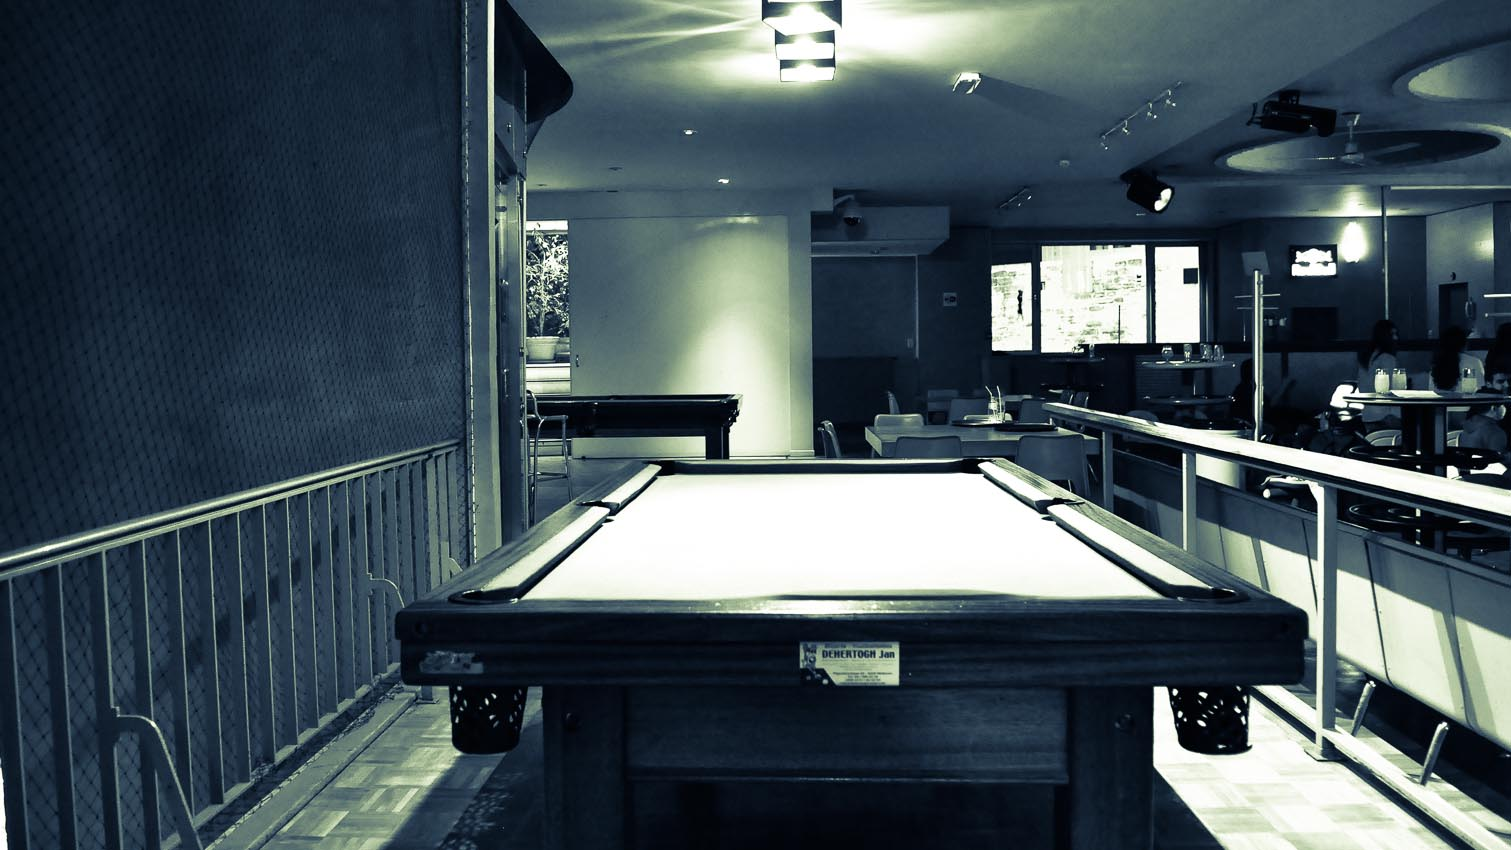 27-sport-boxe-billard-fitness-location-decors-film-cinema-photo-belgium-bruxelles